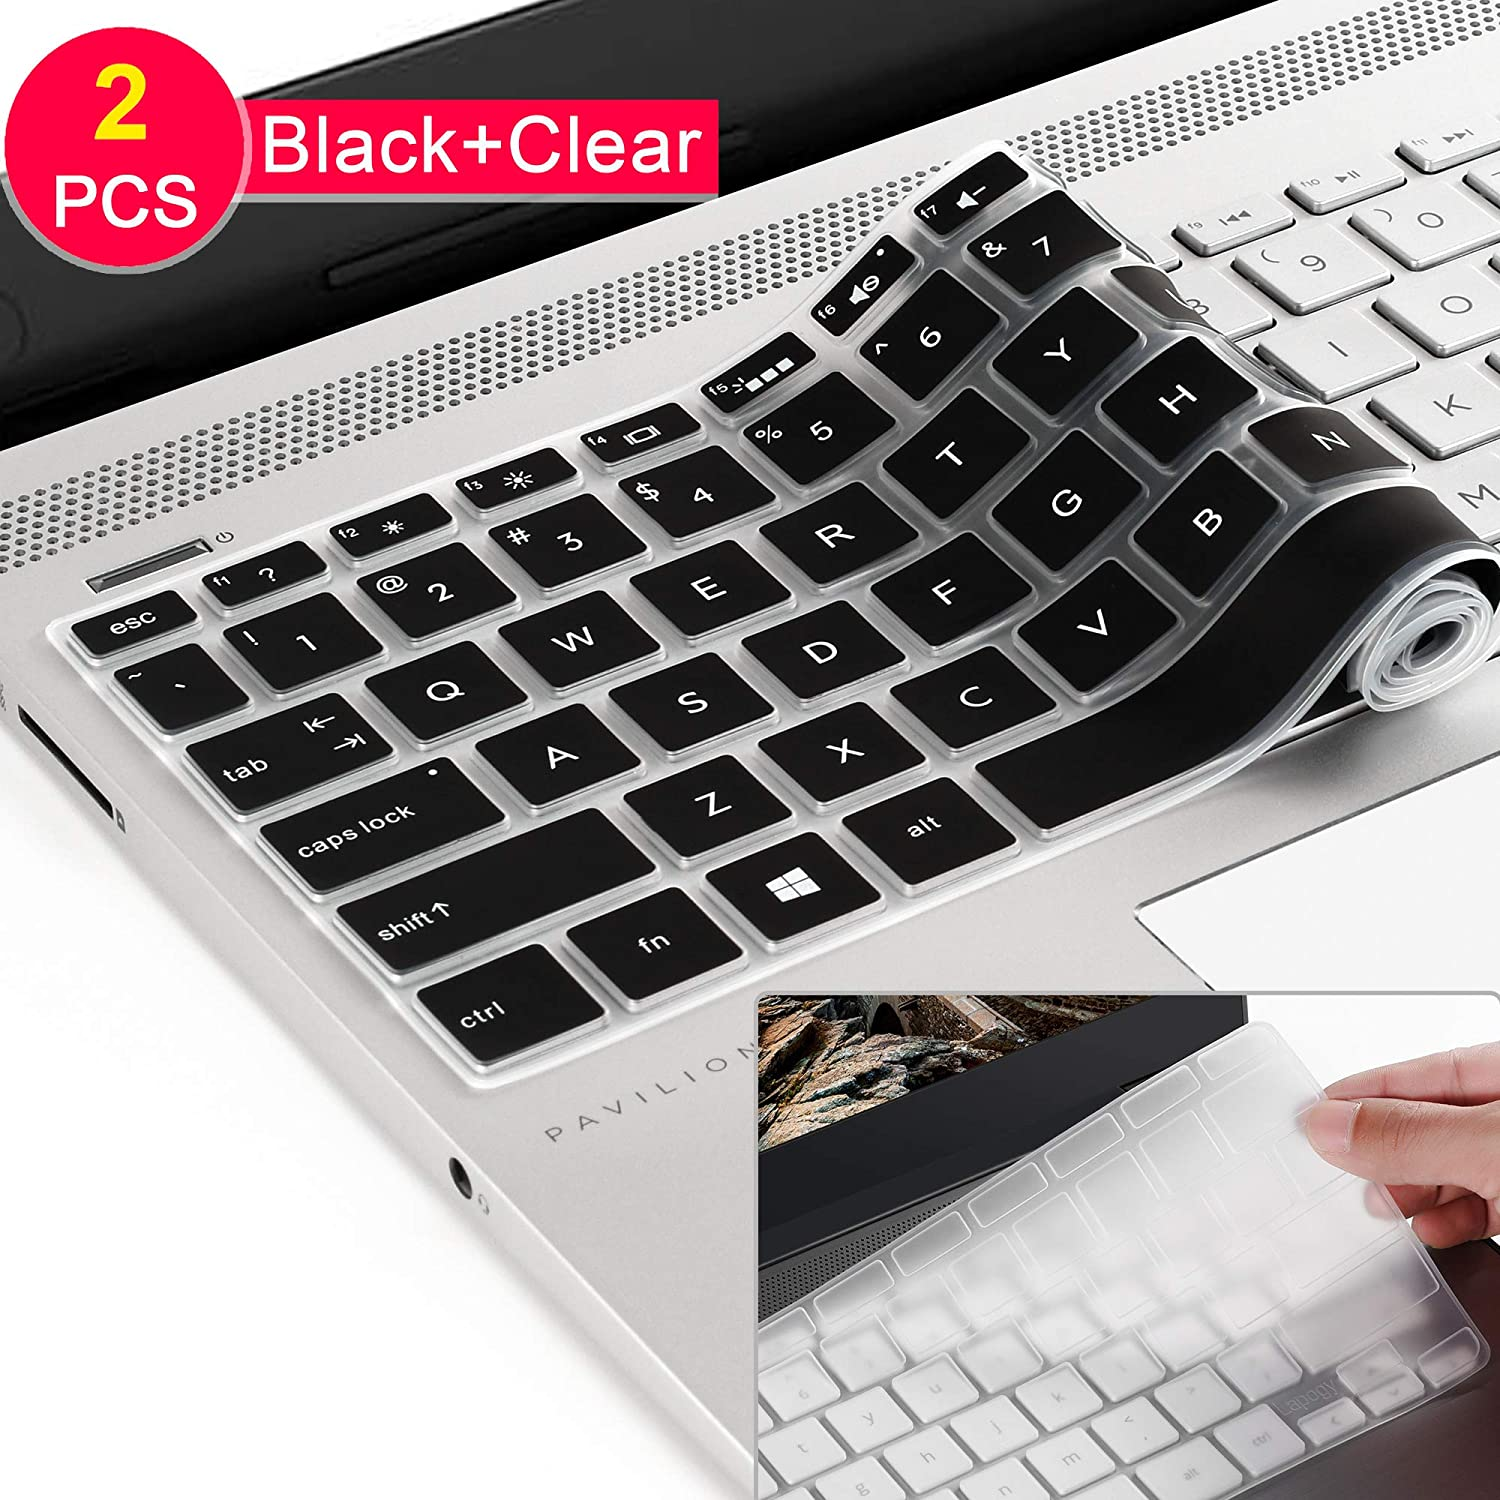 [2 Pcs] for 2019 2018 HP 14 inch Laptop Keyboard Cover/HP Pavilion x360 Keyboard Cover 14M-BA 14M-CD 14-BF 14-BW 14-cm 14-CF Series 14 Inch,Silicone Keyboard Protective Cover Skin,Black+Clear